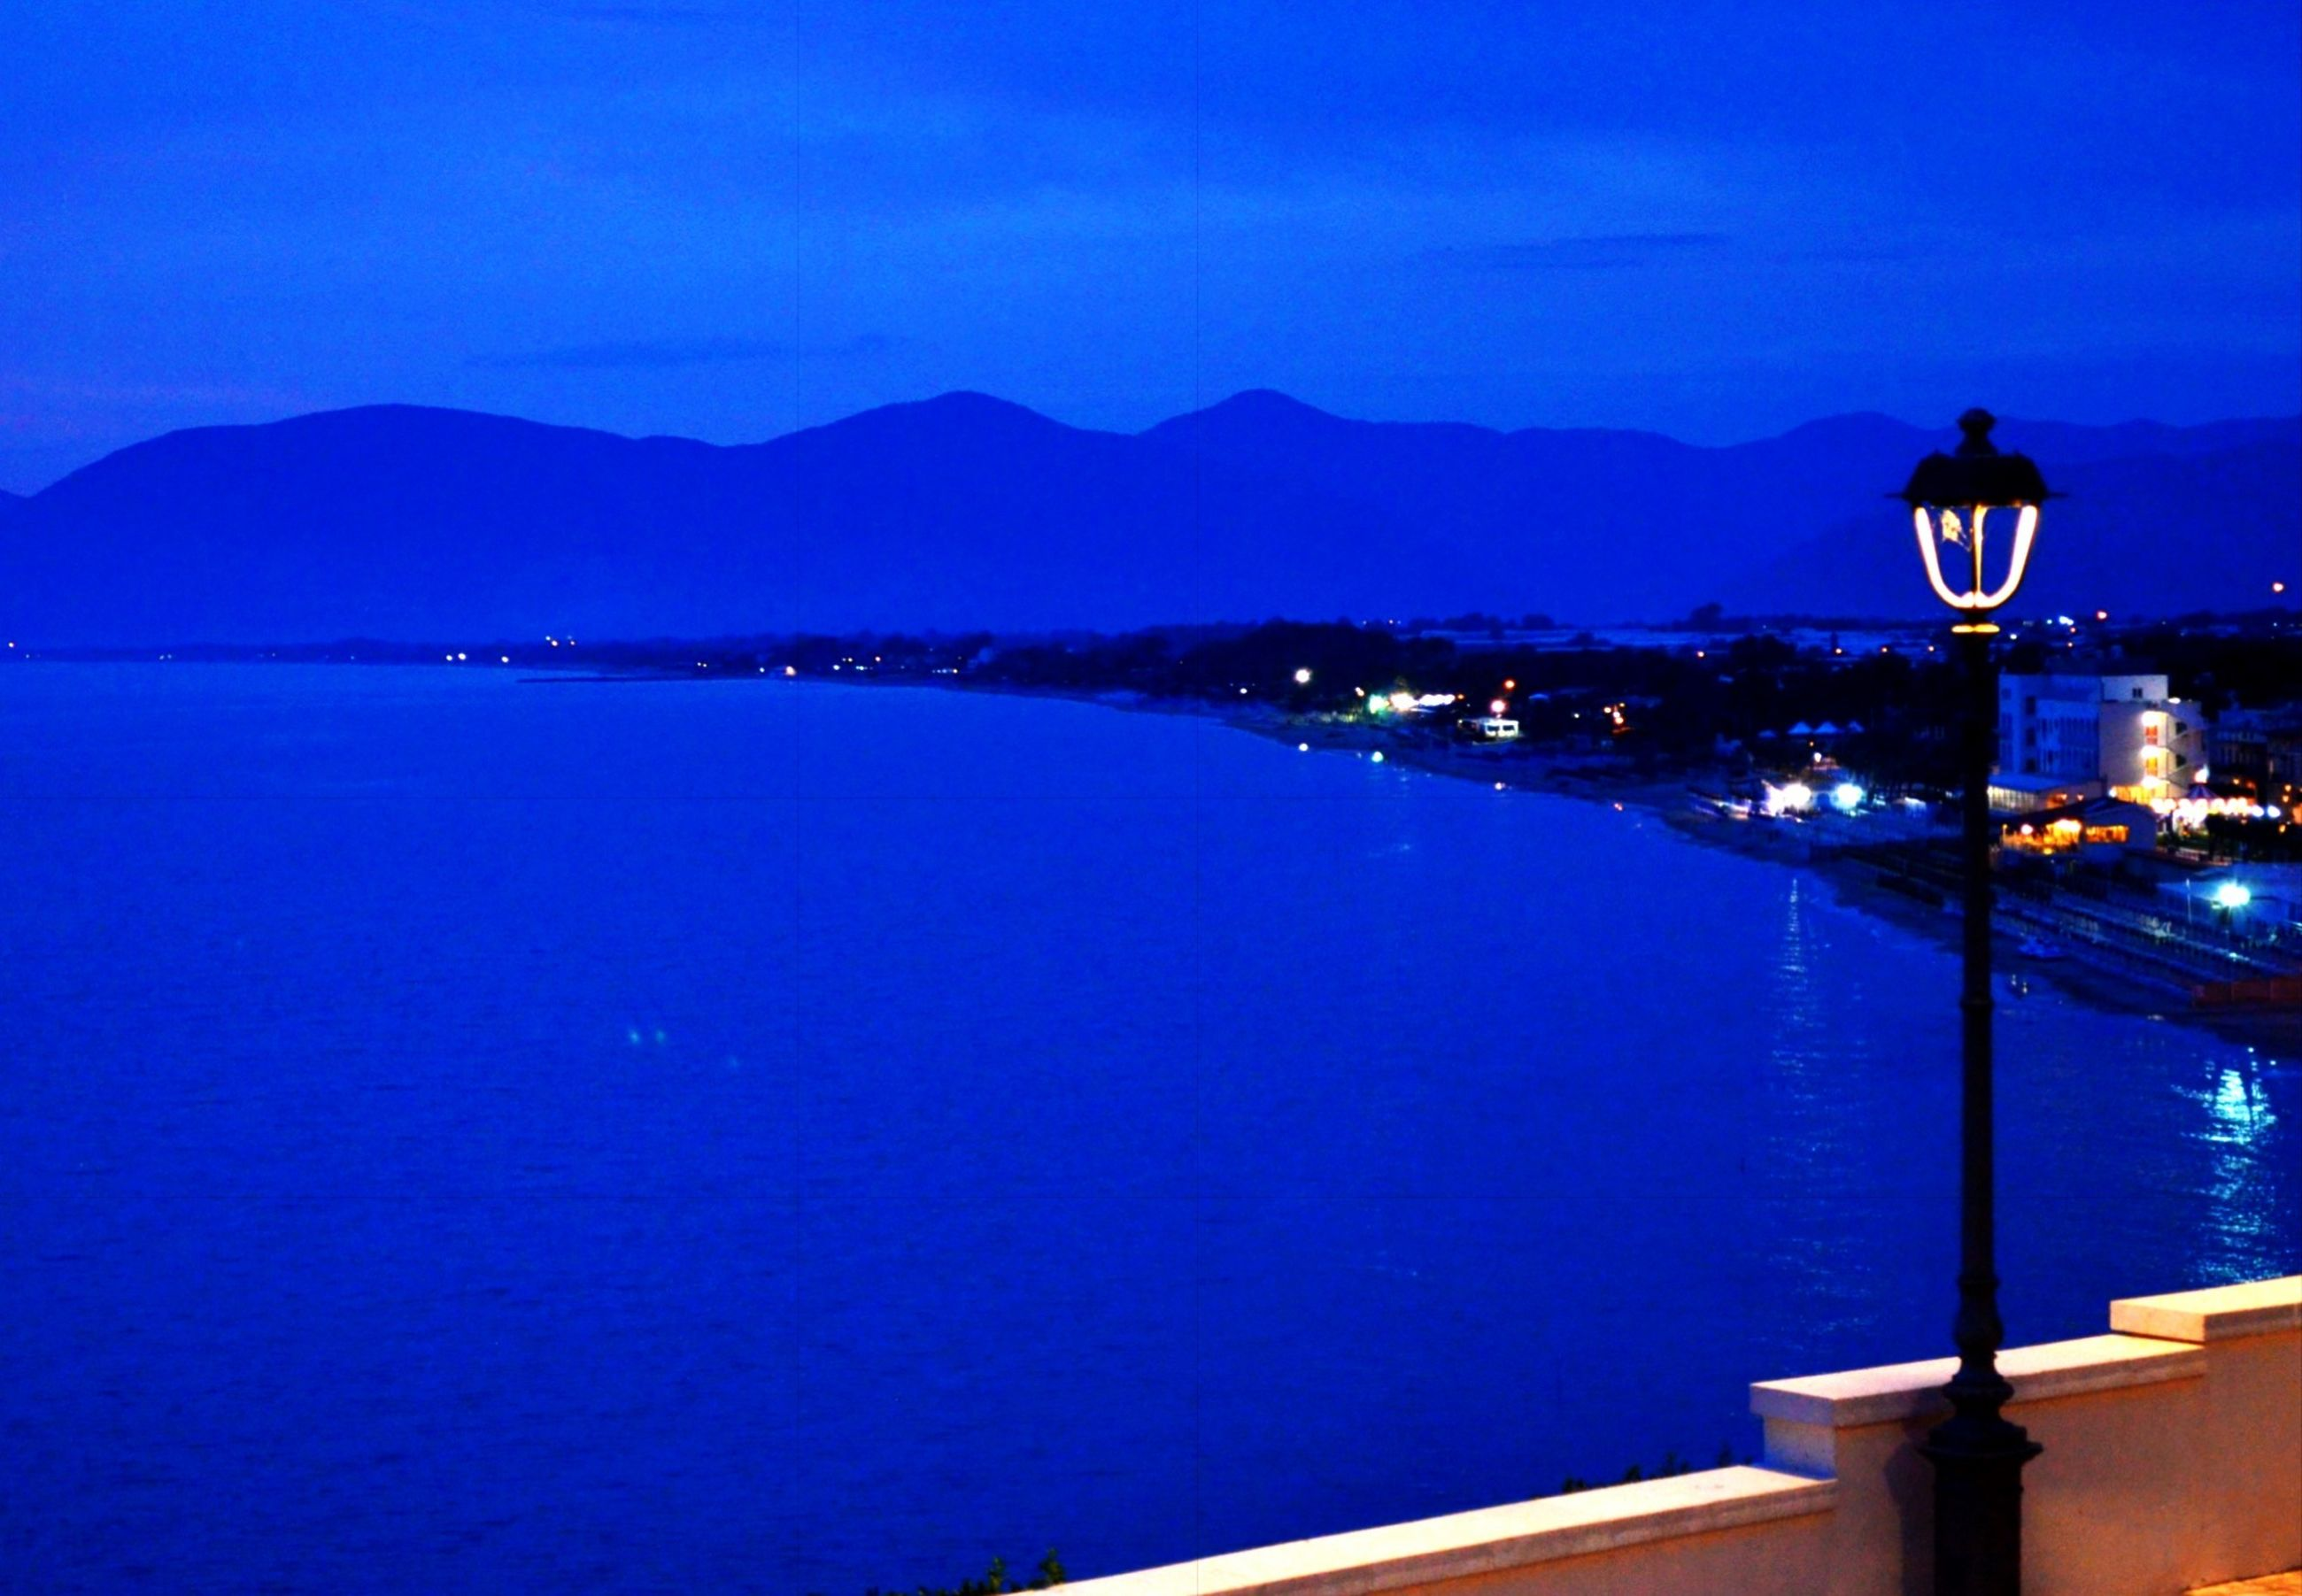 blue, water, mountain, sea, built structure, illuminated, architecture, clear sky, building exterior, mountain range, transportation, nautical vessel, night, copy space, city, river, nature, scenics, outdoors, sky